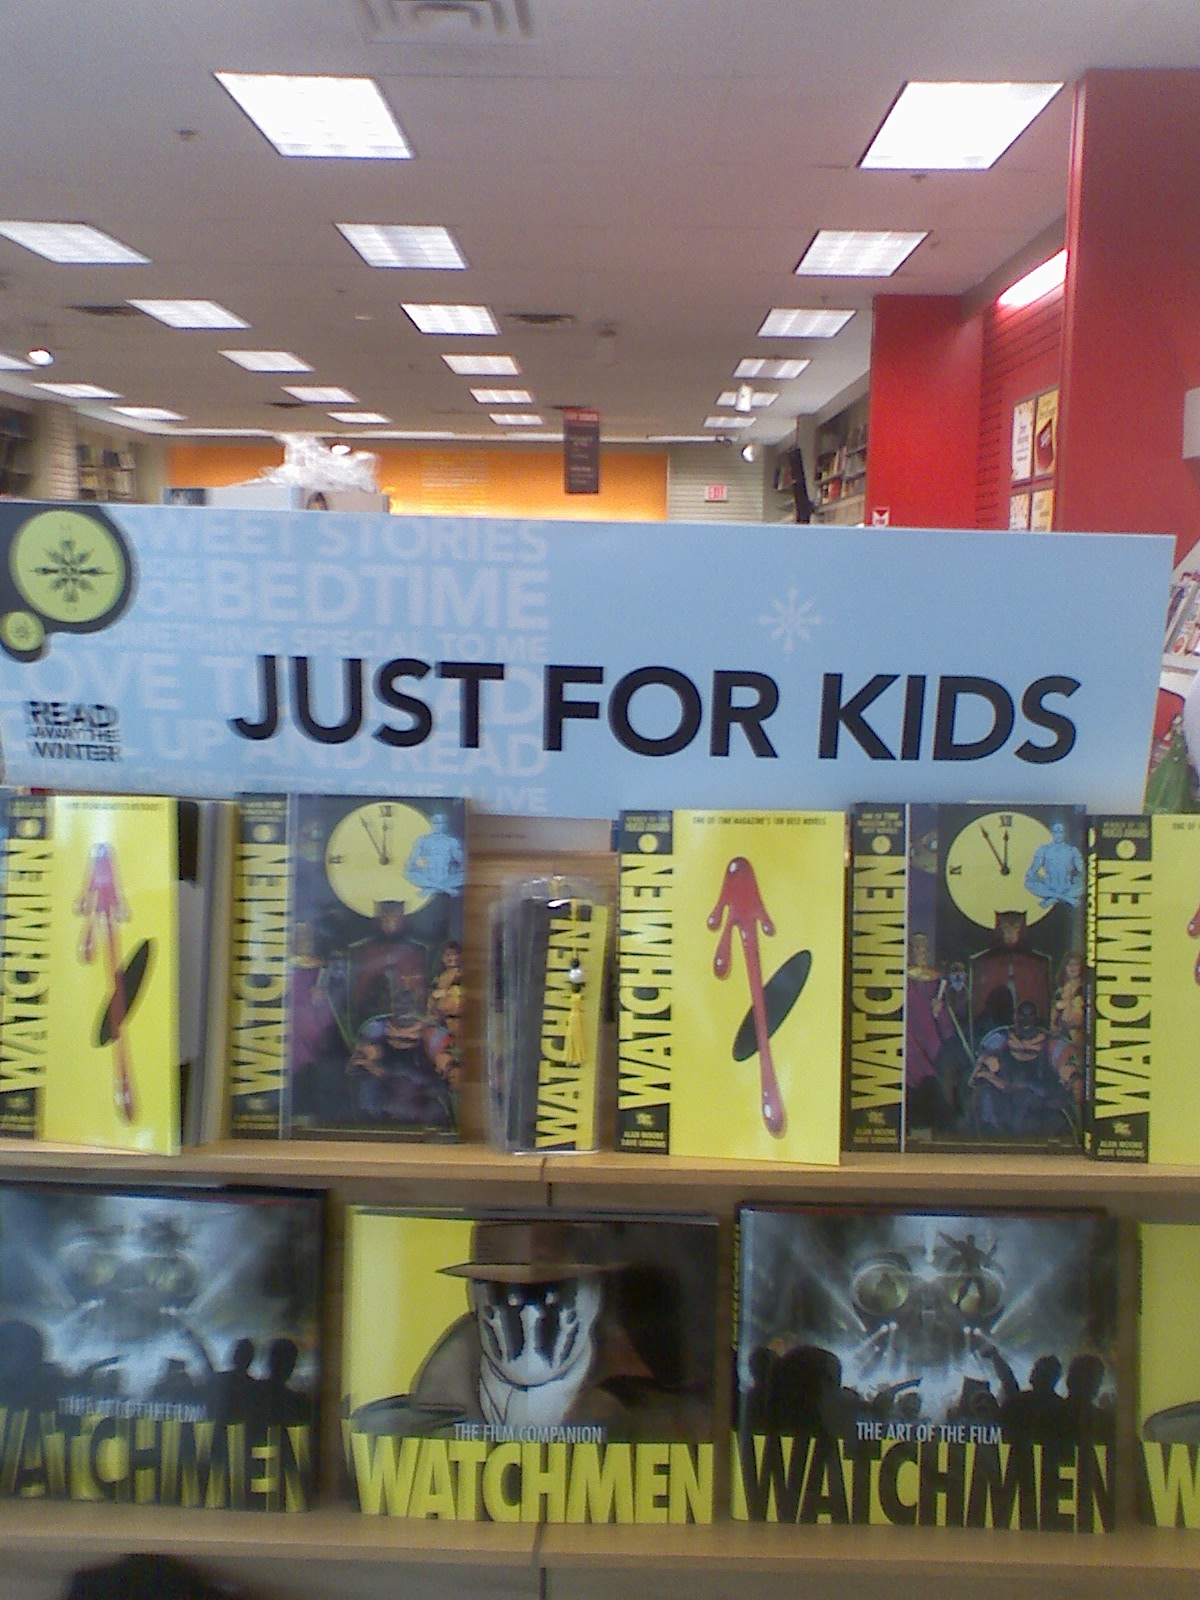 Watchmen for Kids